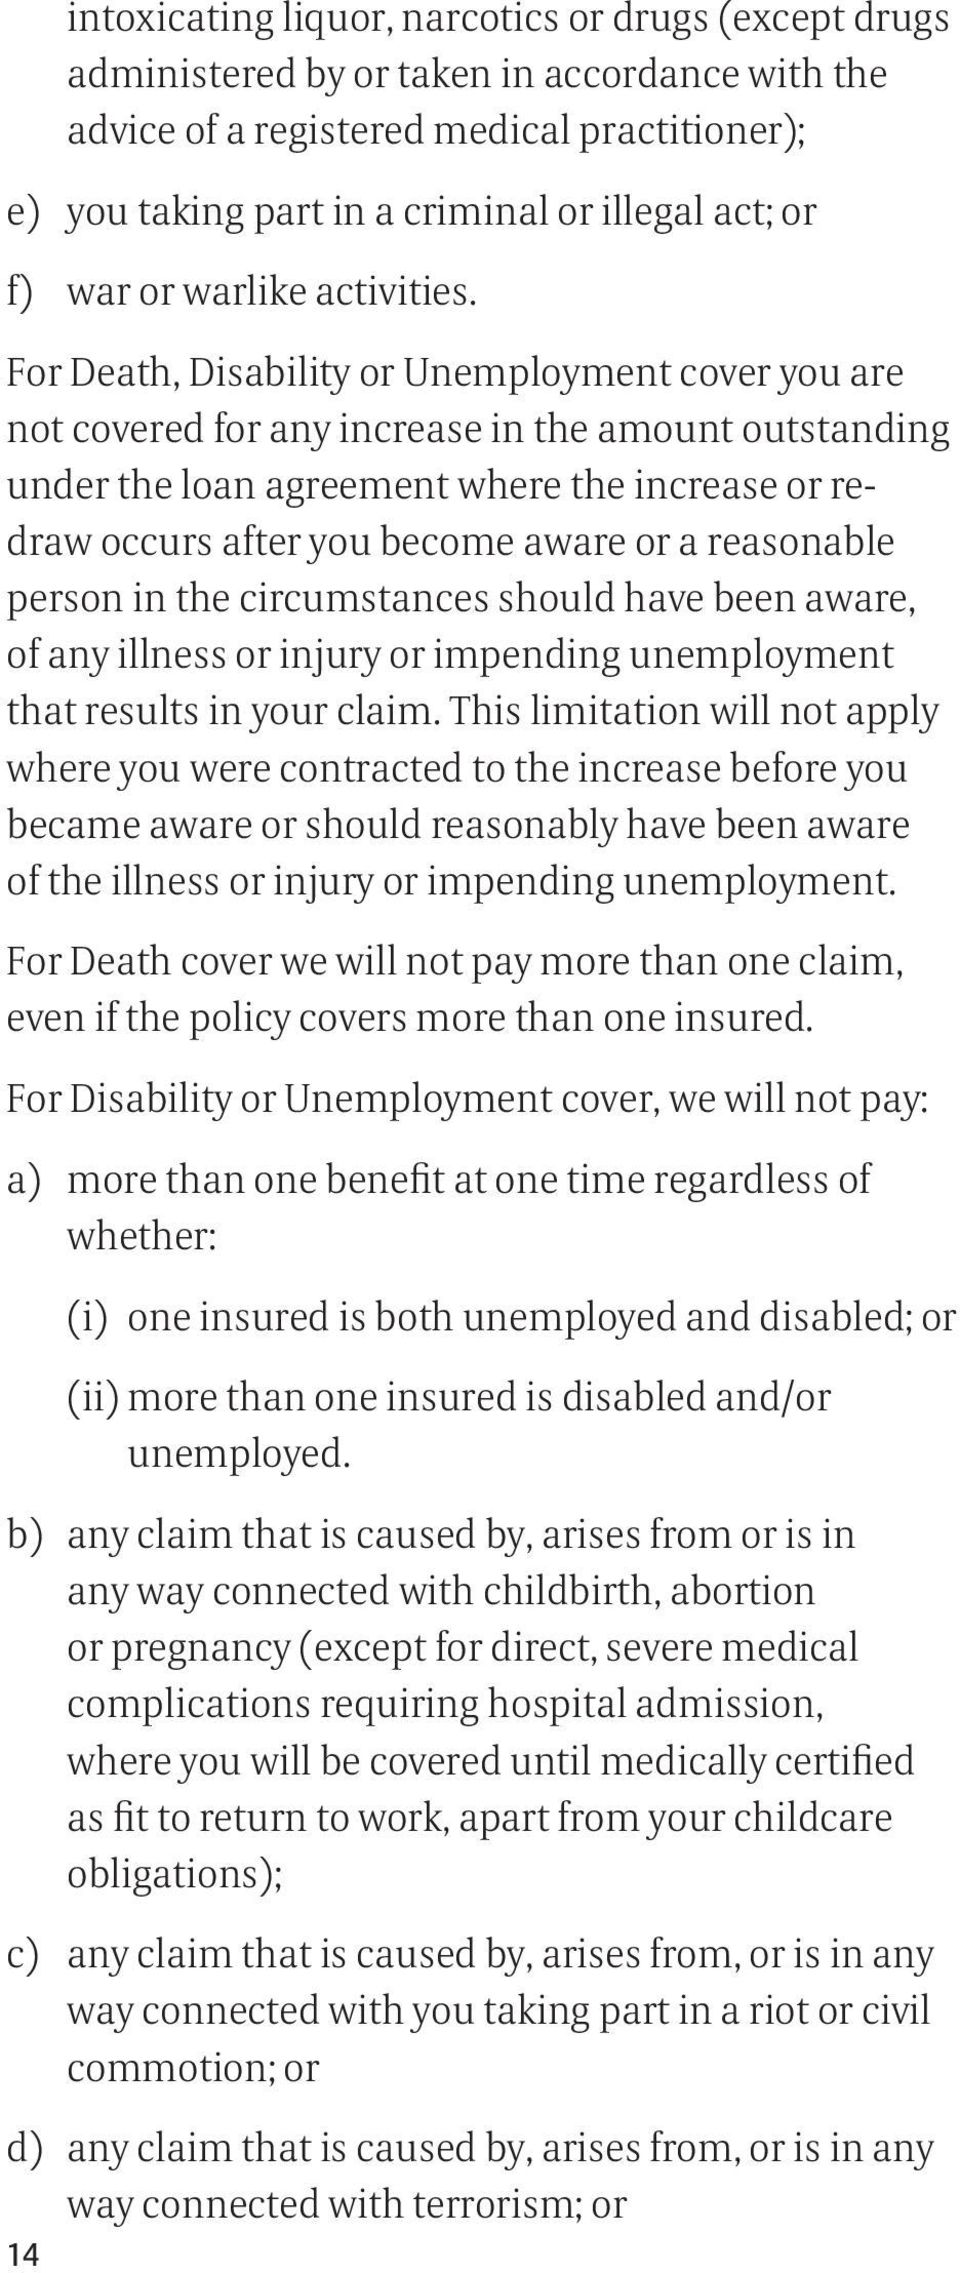 For Death, Disability or Unemployment cover you are not covered for any increase in the amount outstanding under the loan agreement where the increase or redraw occurs after you become aware or a